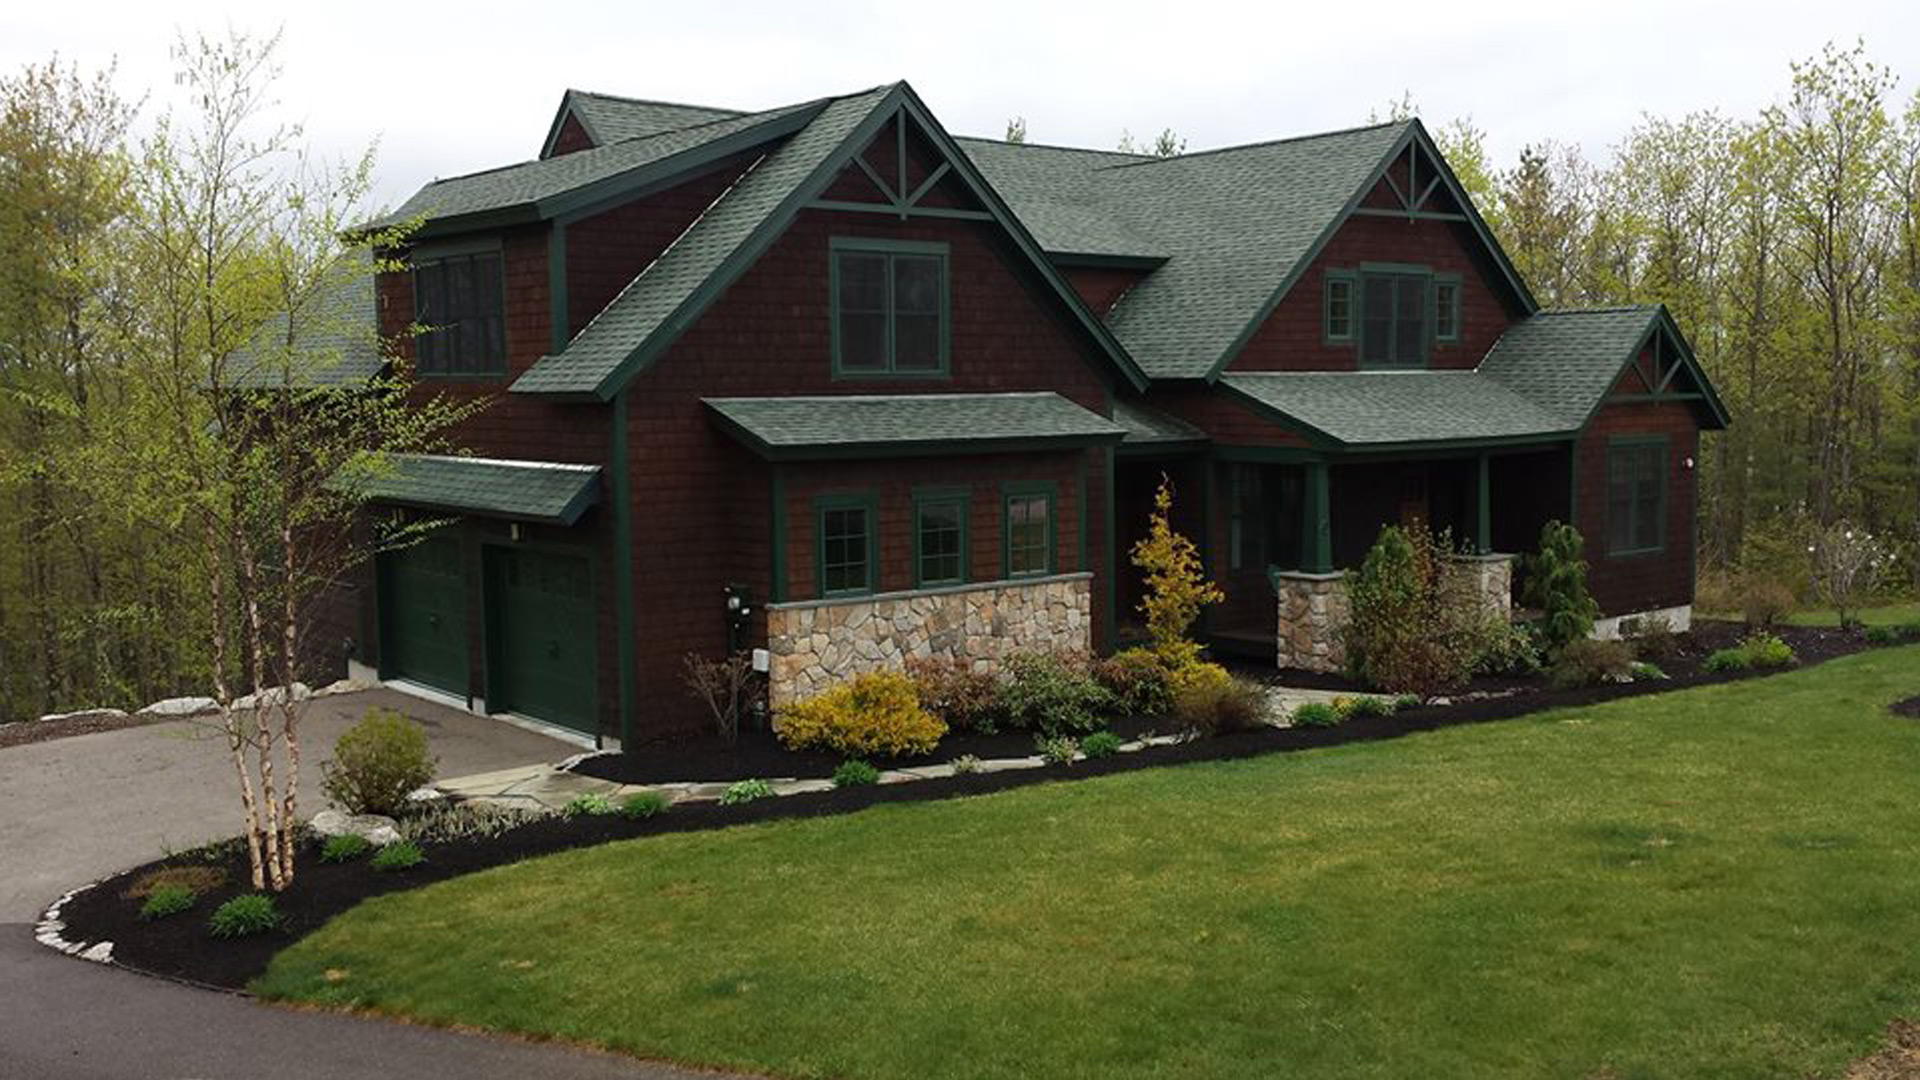 Home northfield landscaping lawn services and landscape for Kingsbury garden designs